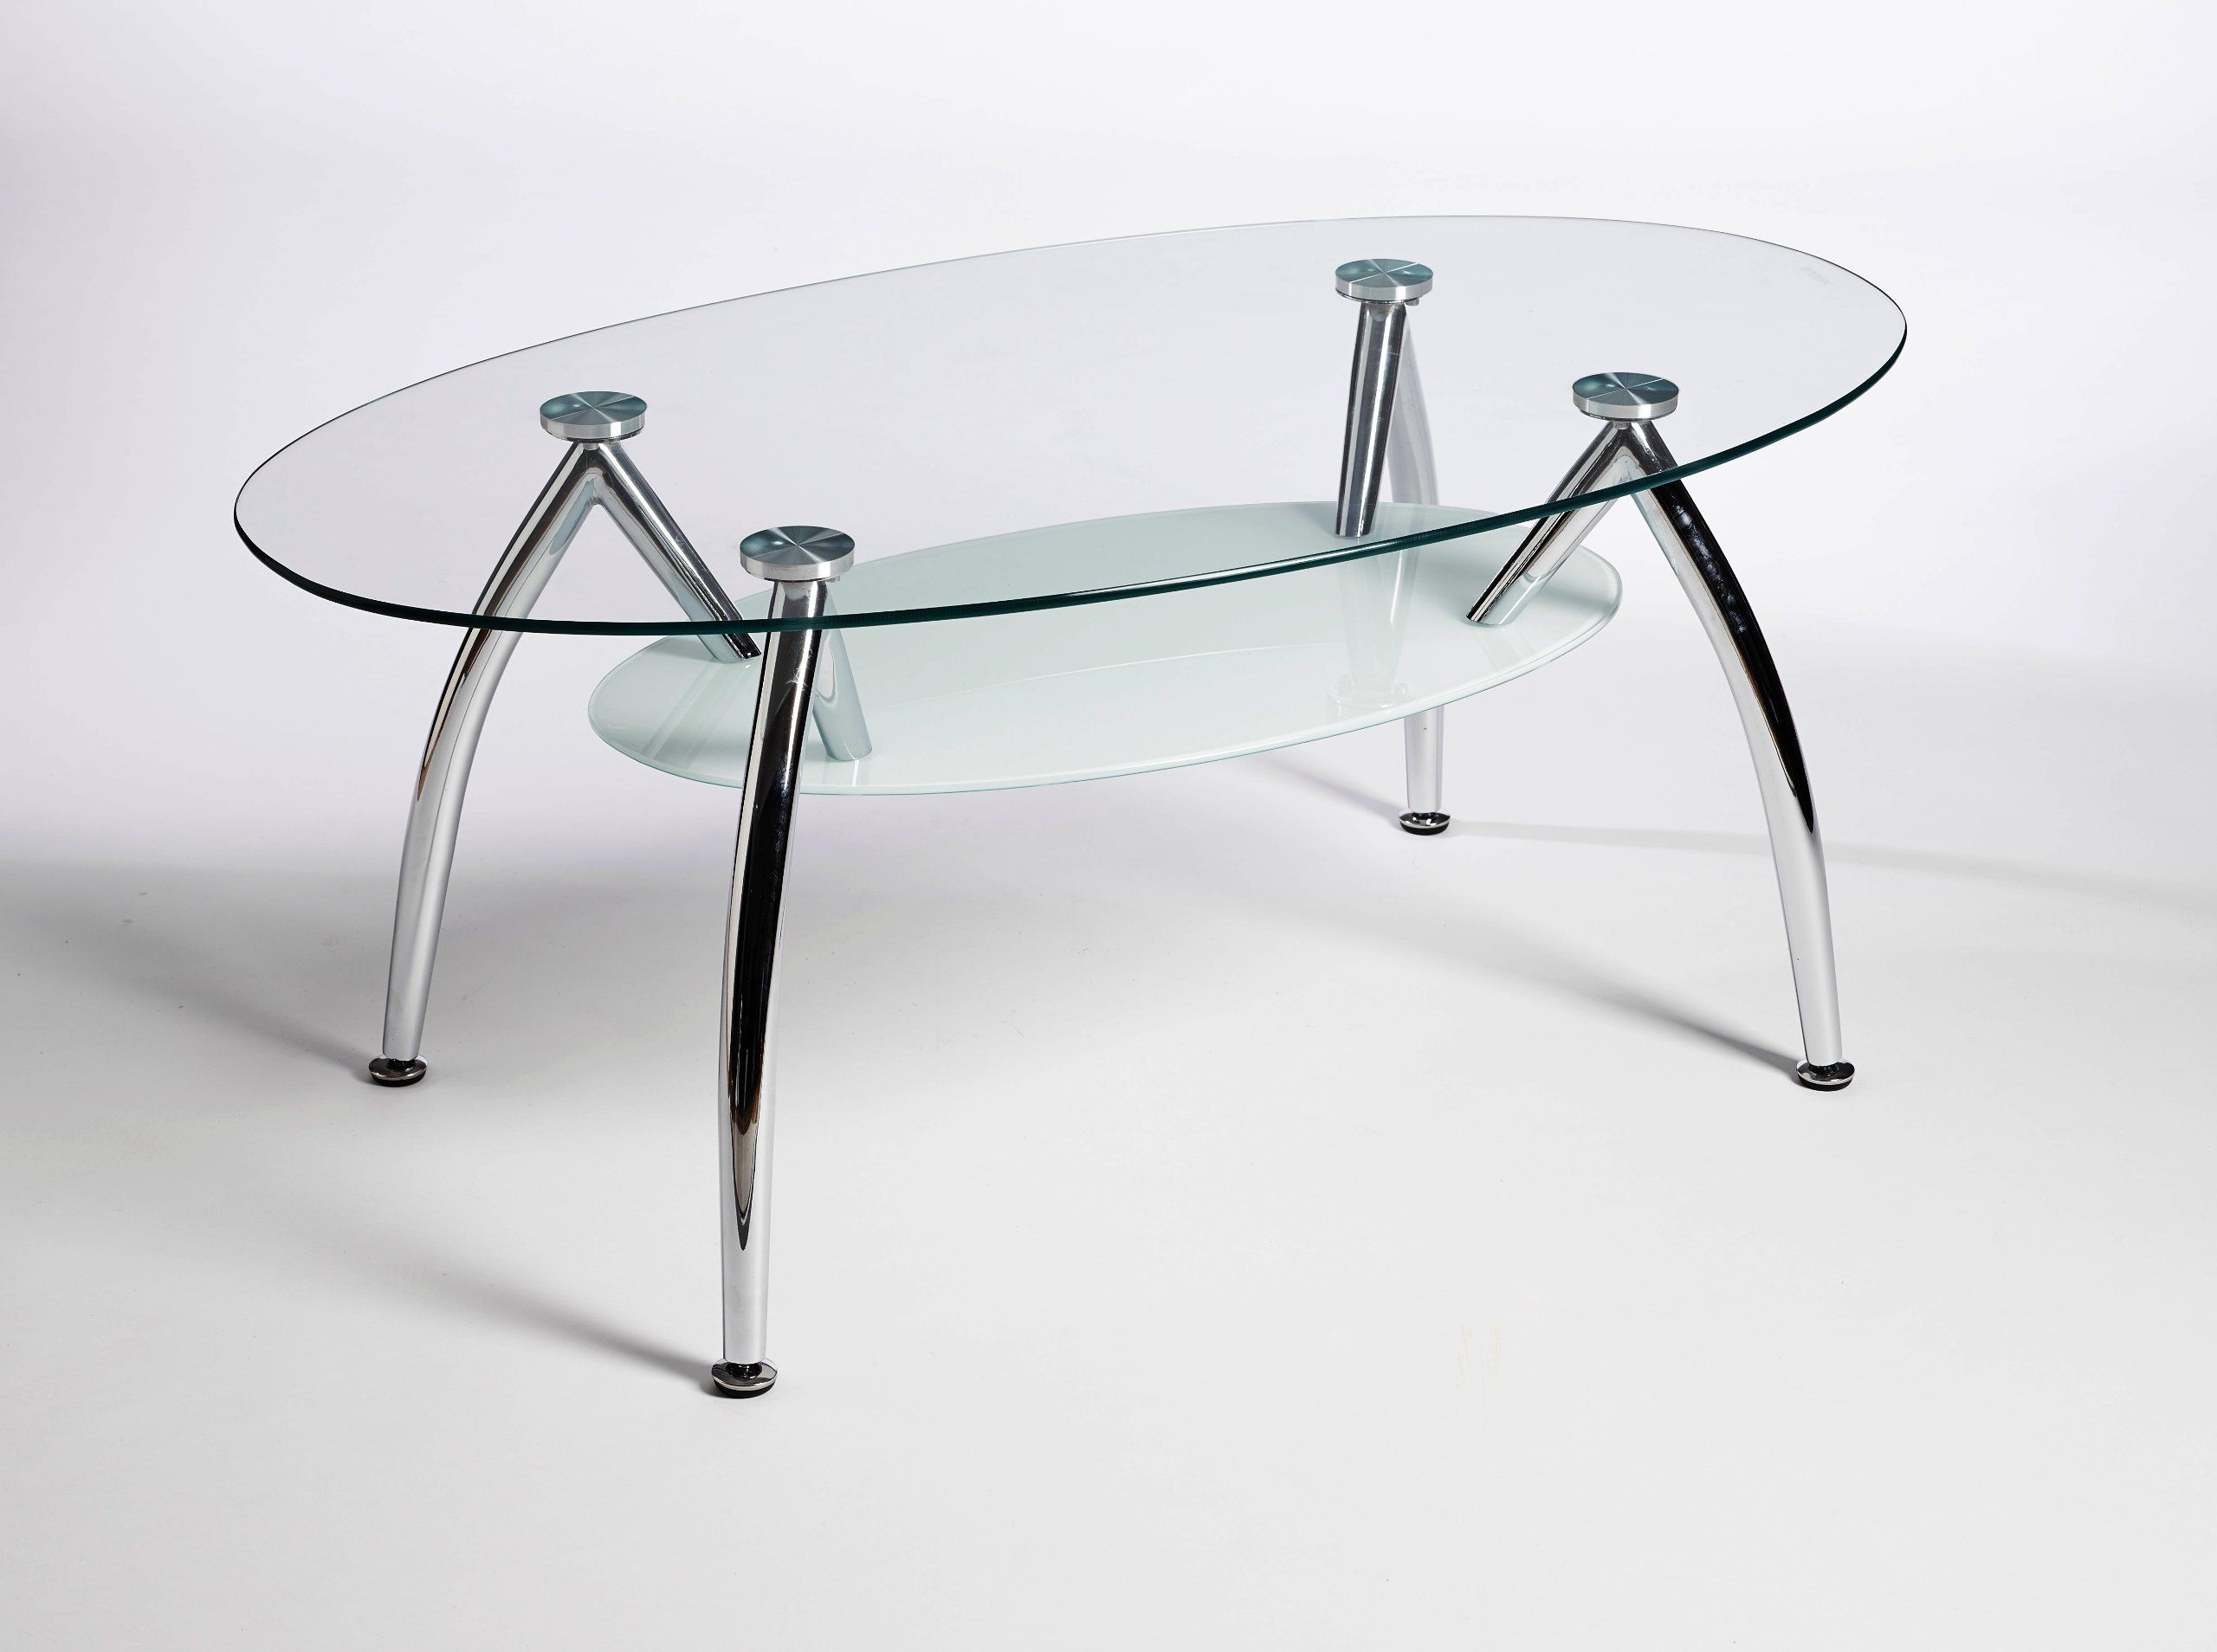 Designer Oval Glass Stainless Steel Coffee Table Amazon